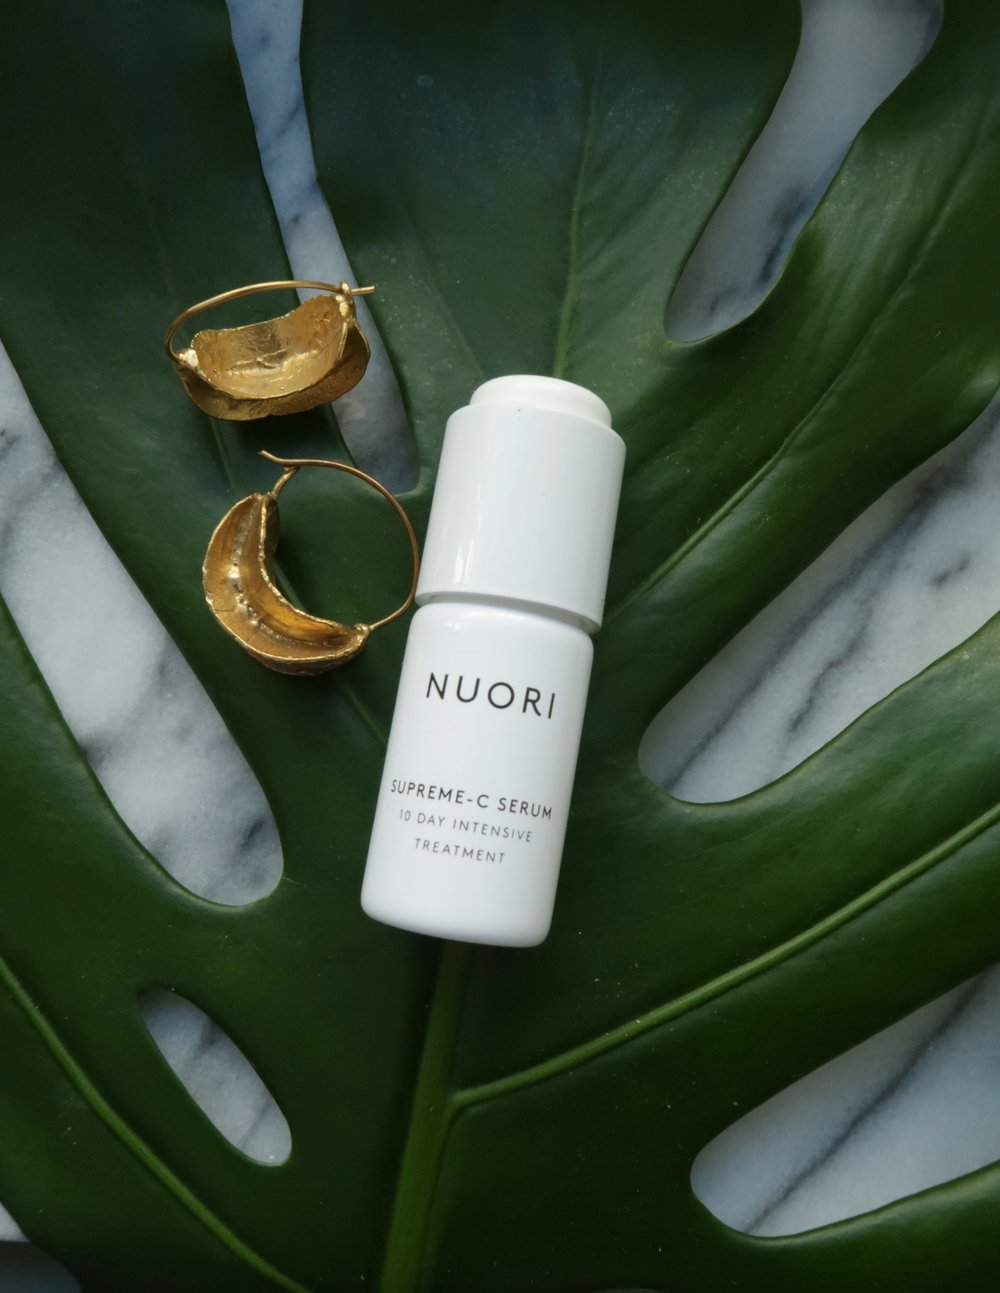 Vitamin C serums are the new holy grail of skincare. Get yours  here